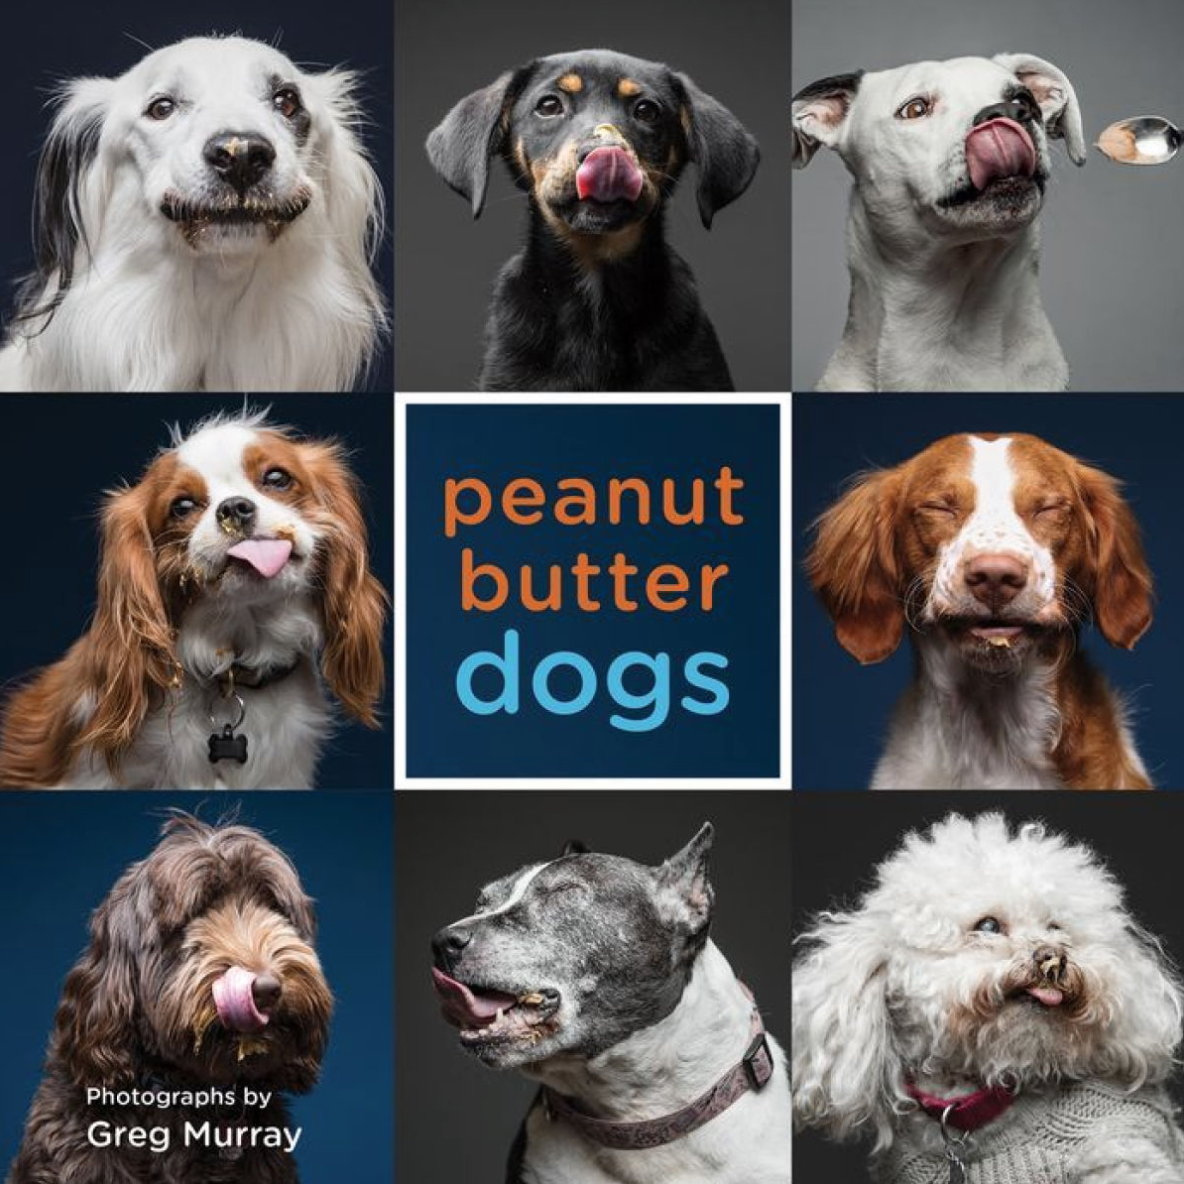 Peanut Butter Dogs by: Greg Murray